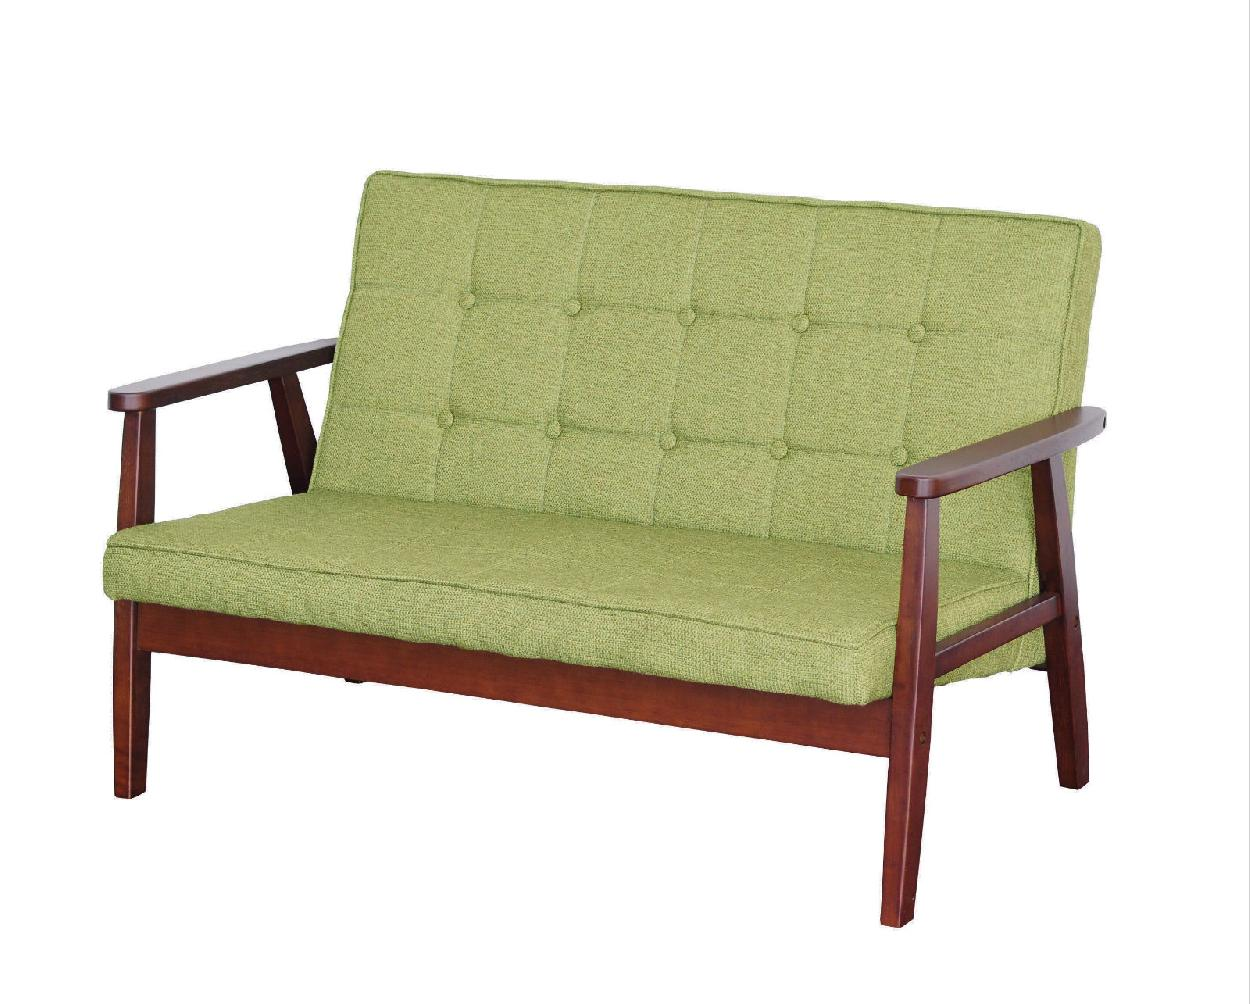 sofa online cheapest bassett furniture alex reviews cute couches available couch and